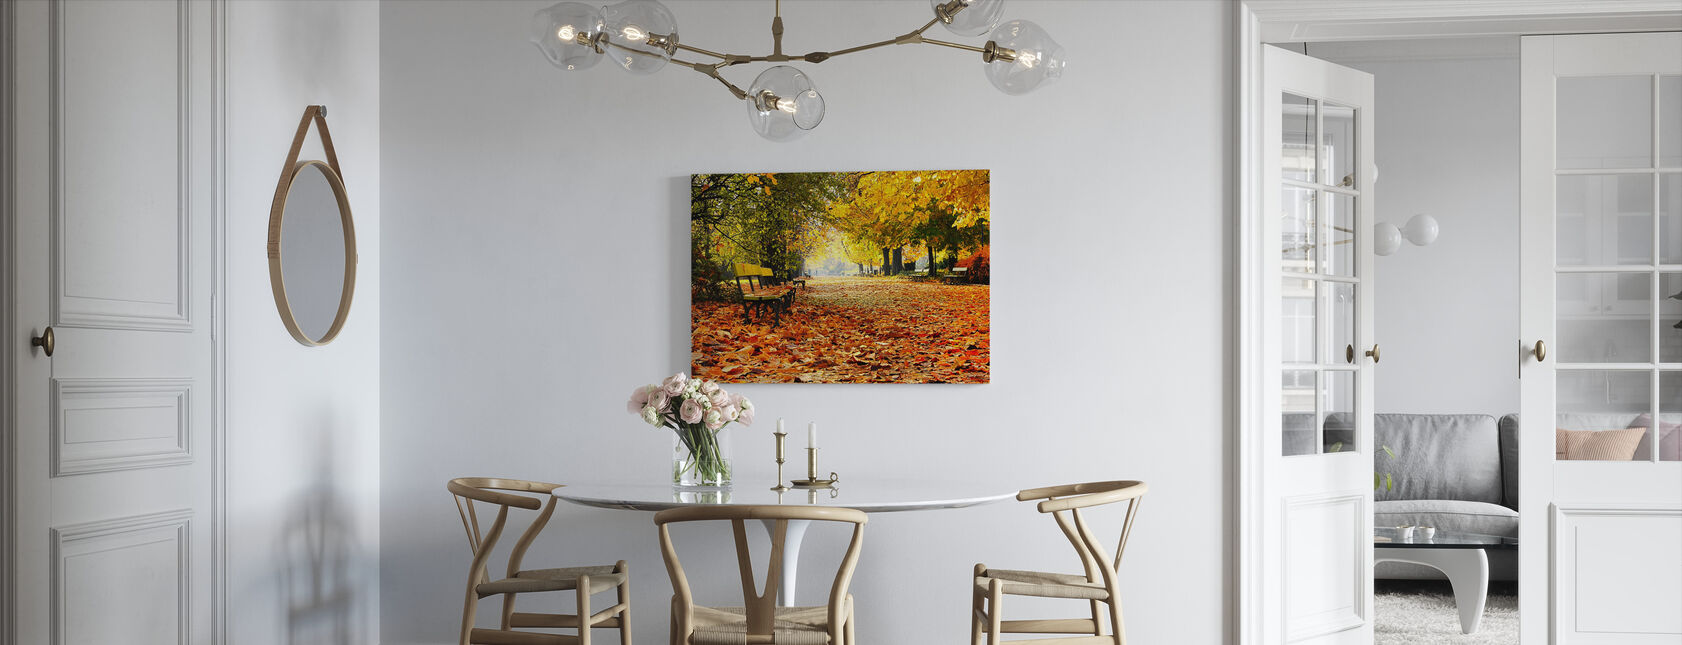 Autumn Park - Canvas print - Kitchen